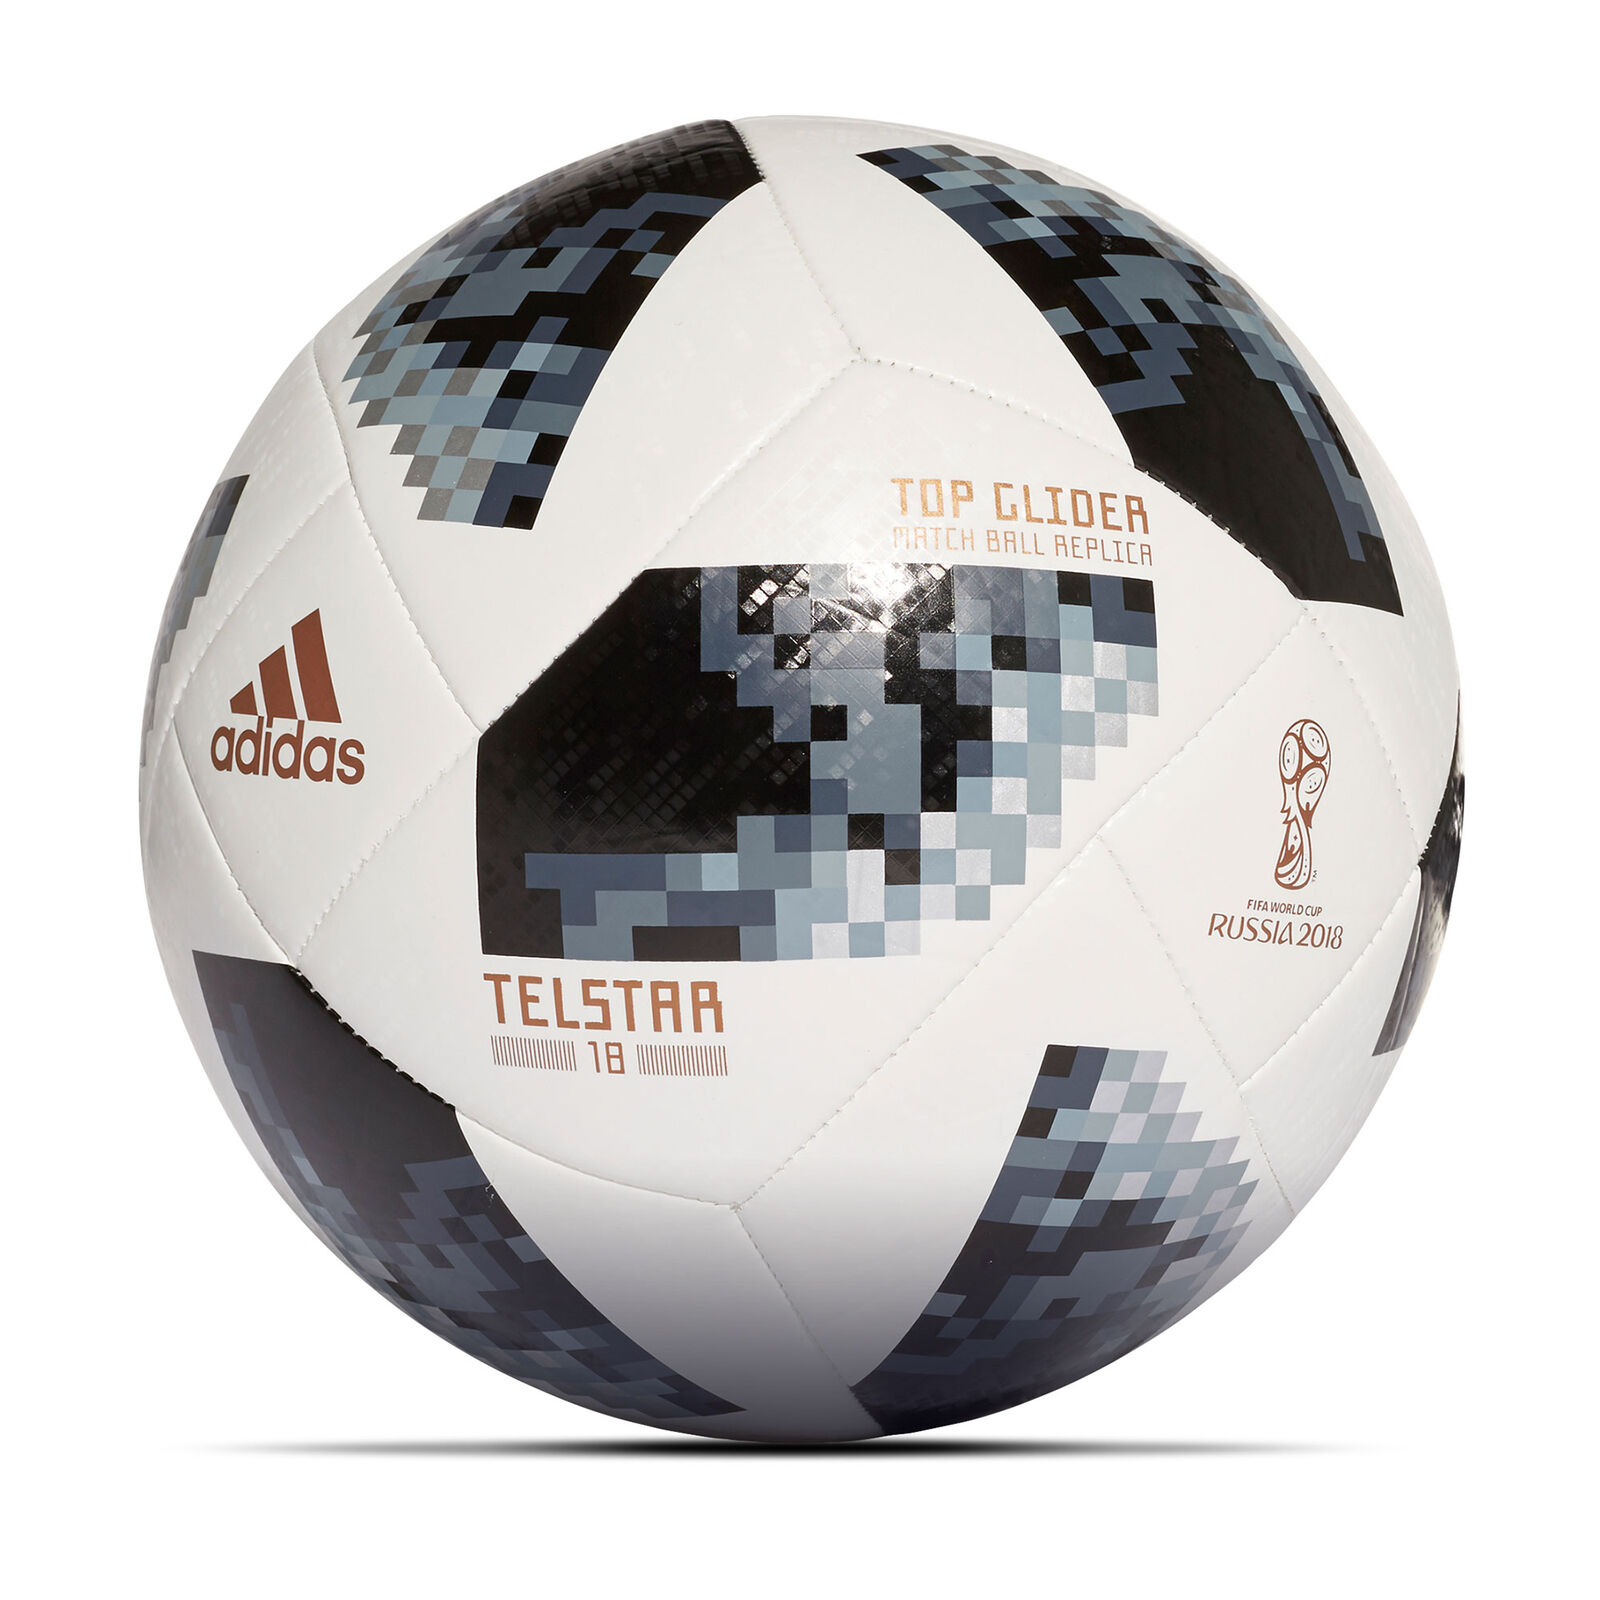 Camiseta Telstar adidas Ce8096 World Cup 2018 Telstar Top Top Glider Football blanco Ce8096 69c0f4a - www.colja.host